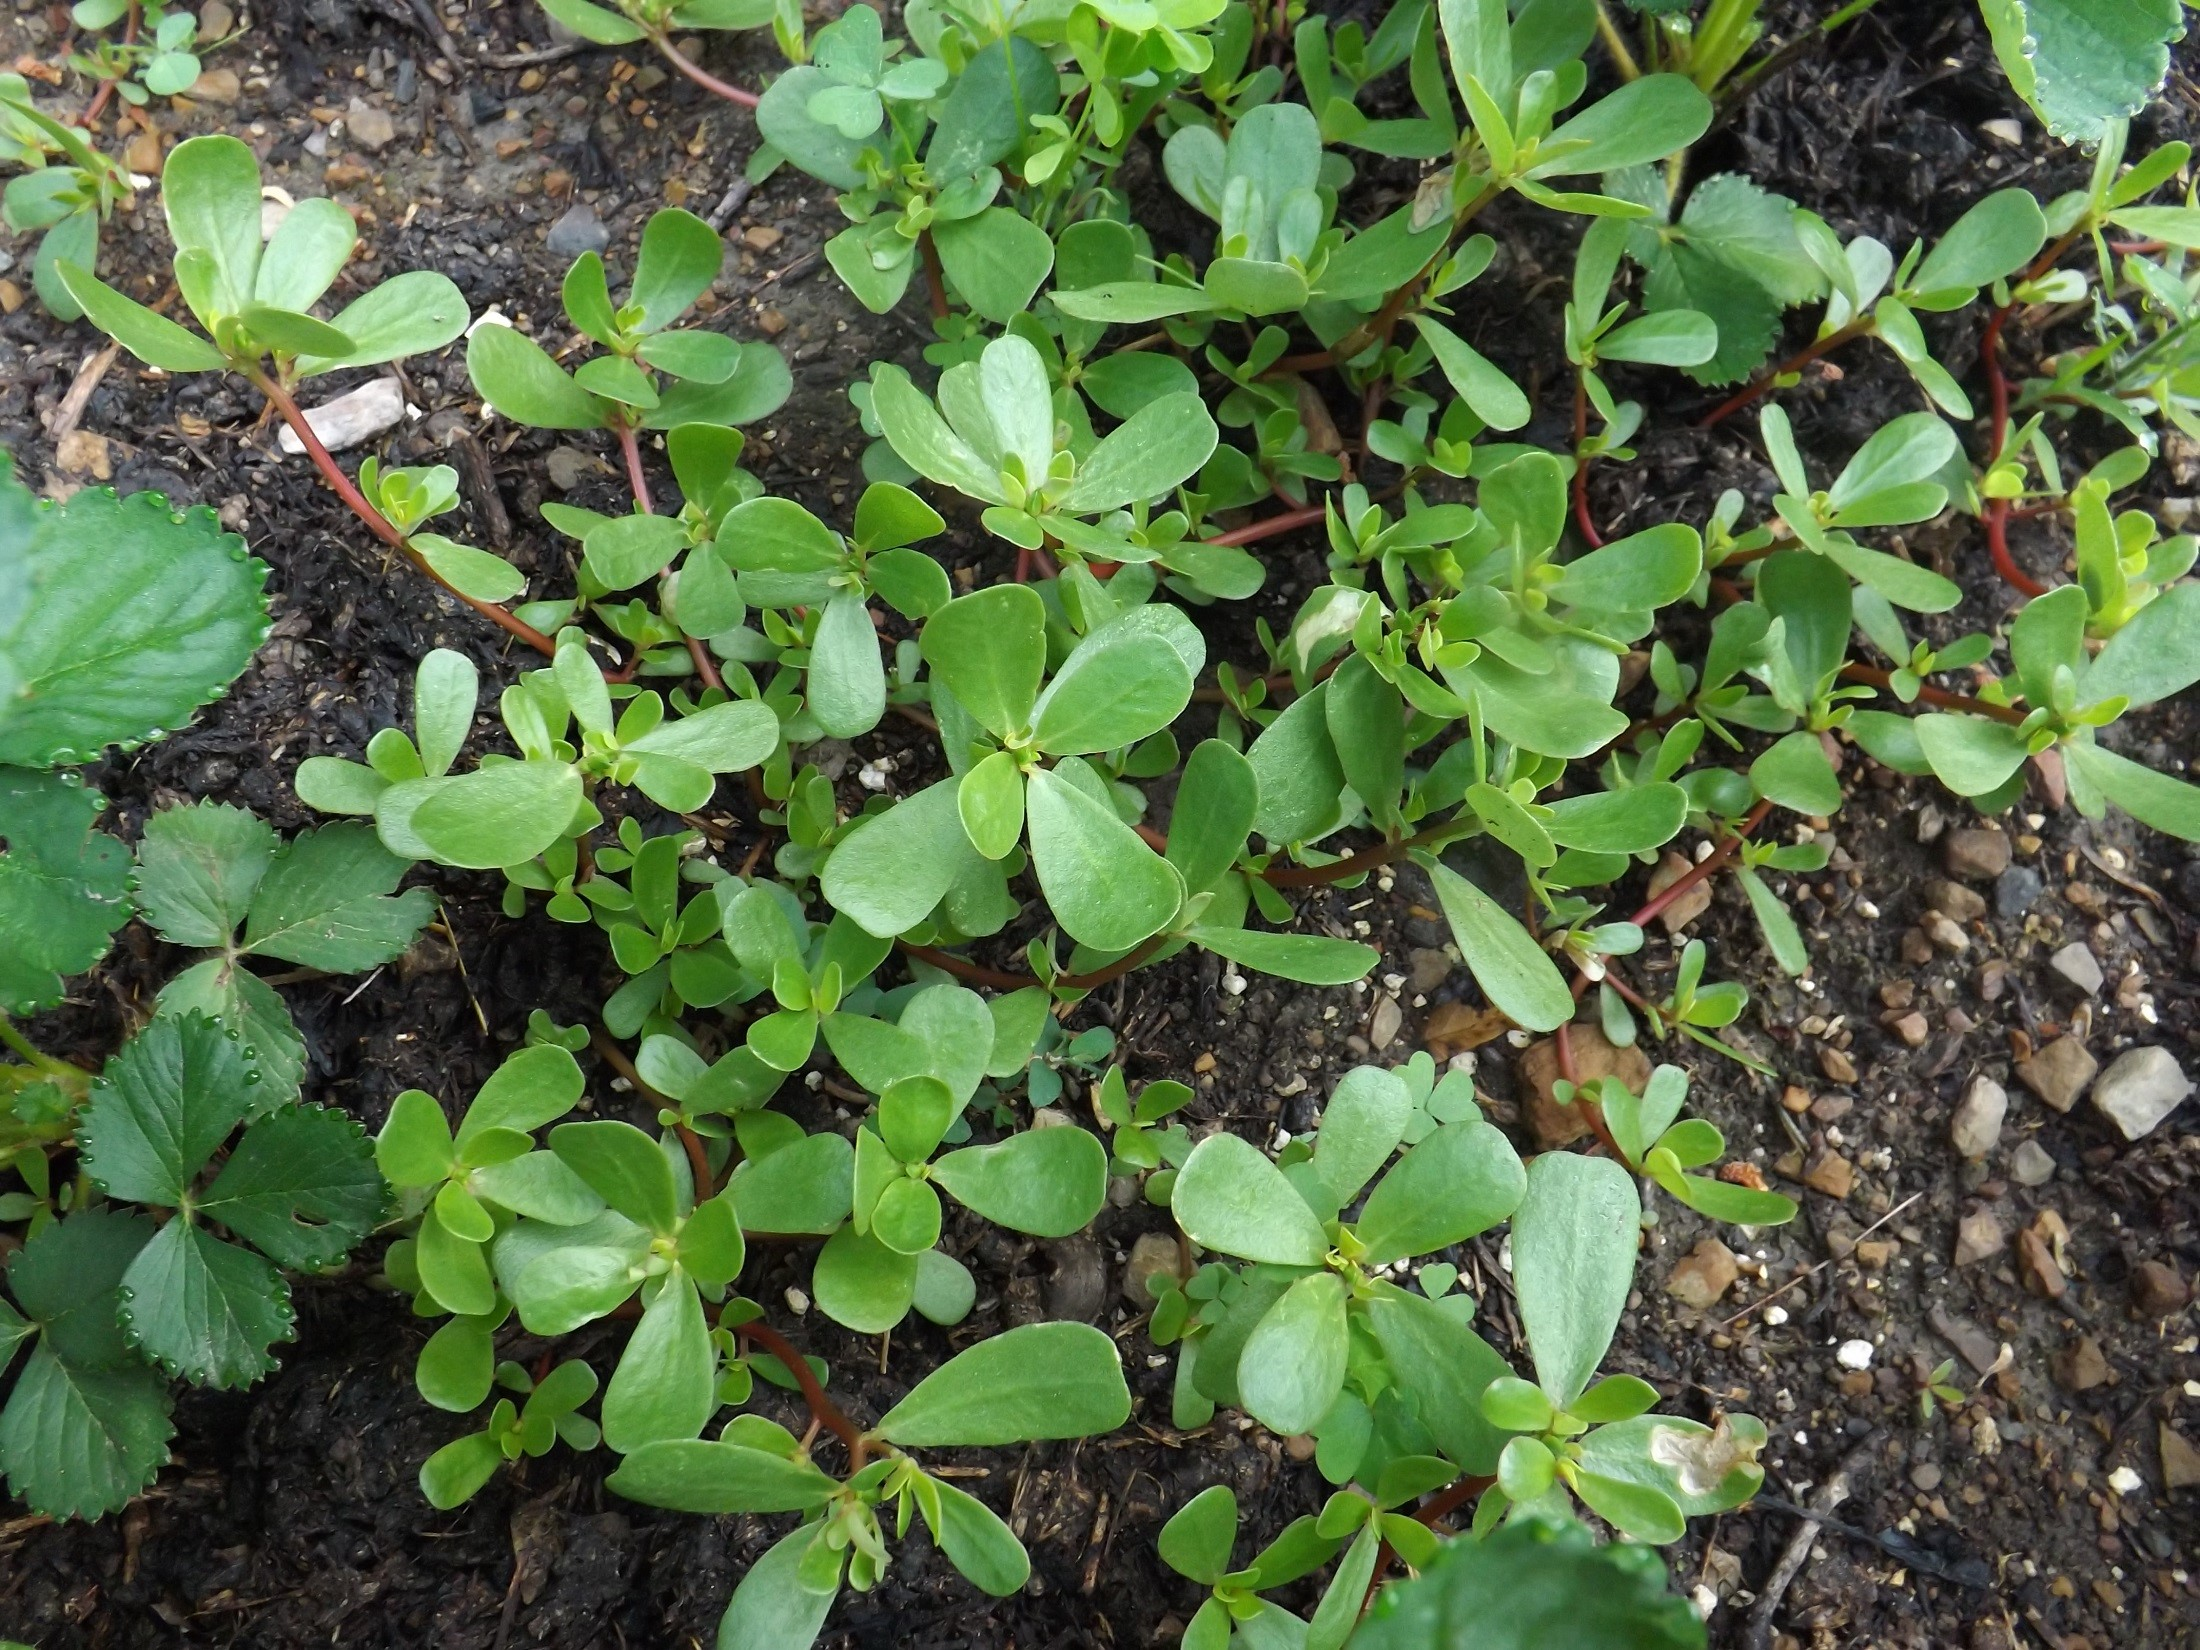 Purslane is rich in vitamins and is a good choice to keep your immune system working well.  However, it may not actually inhibit or kill yeast by itself; so, include other antifungal herbs in your remedy!